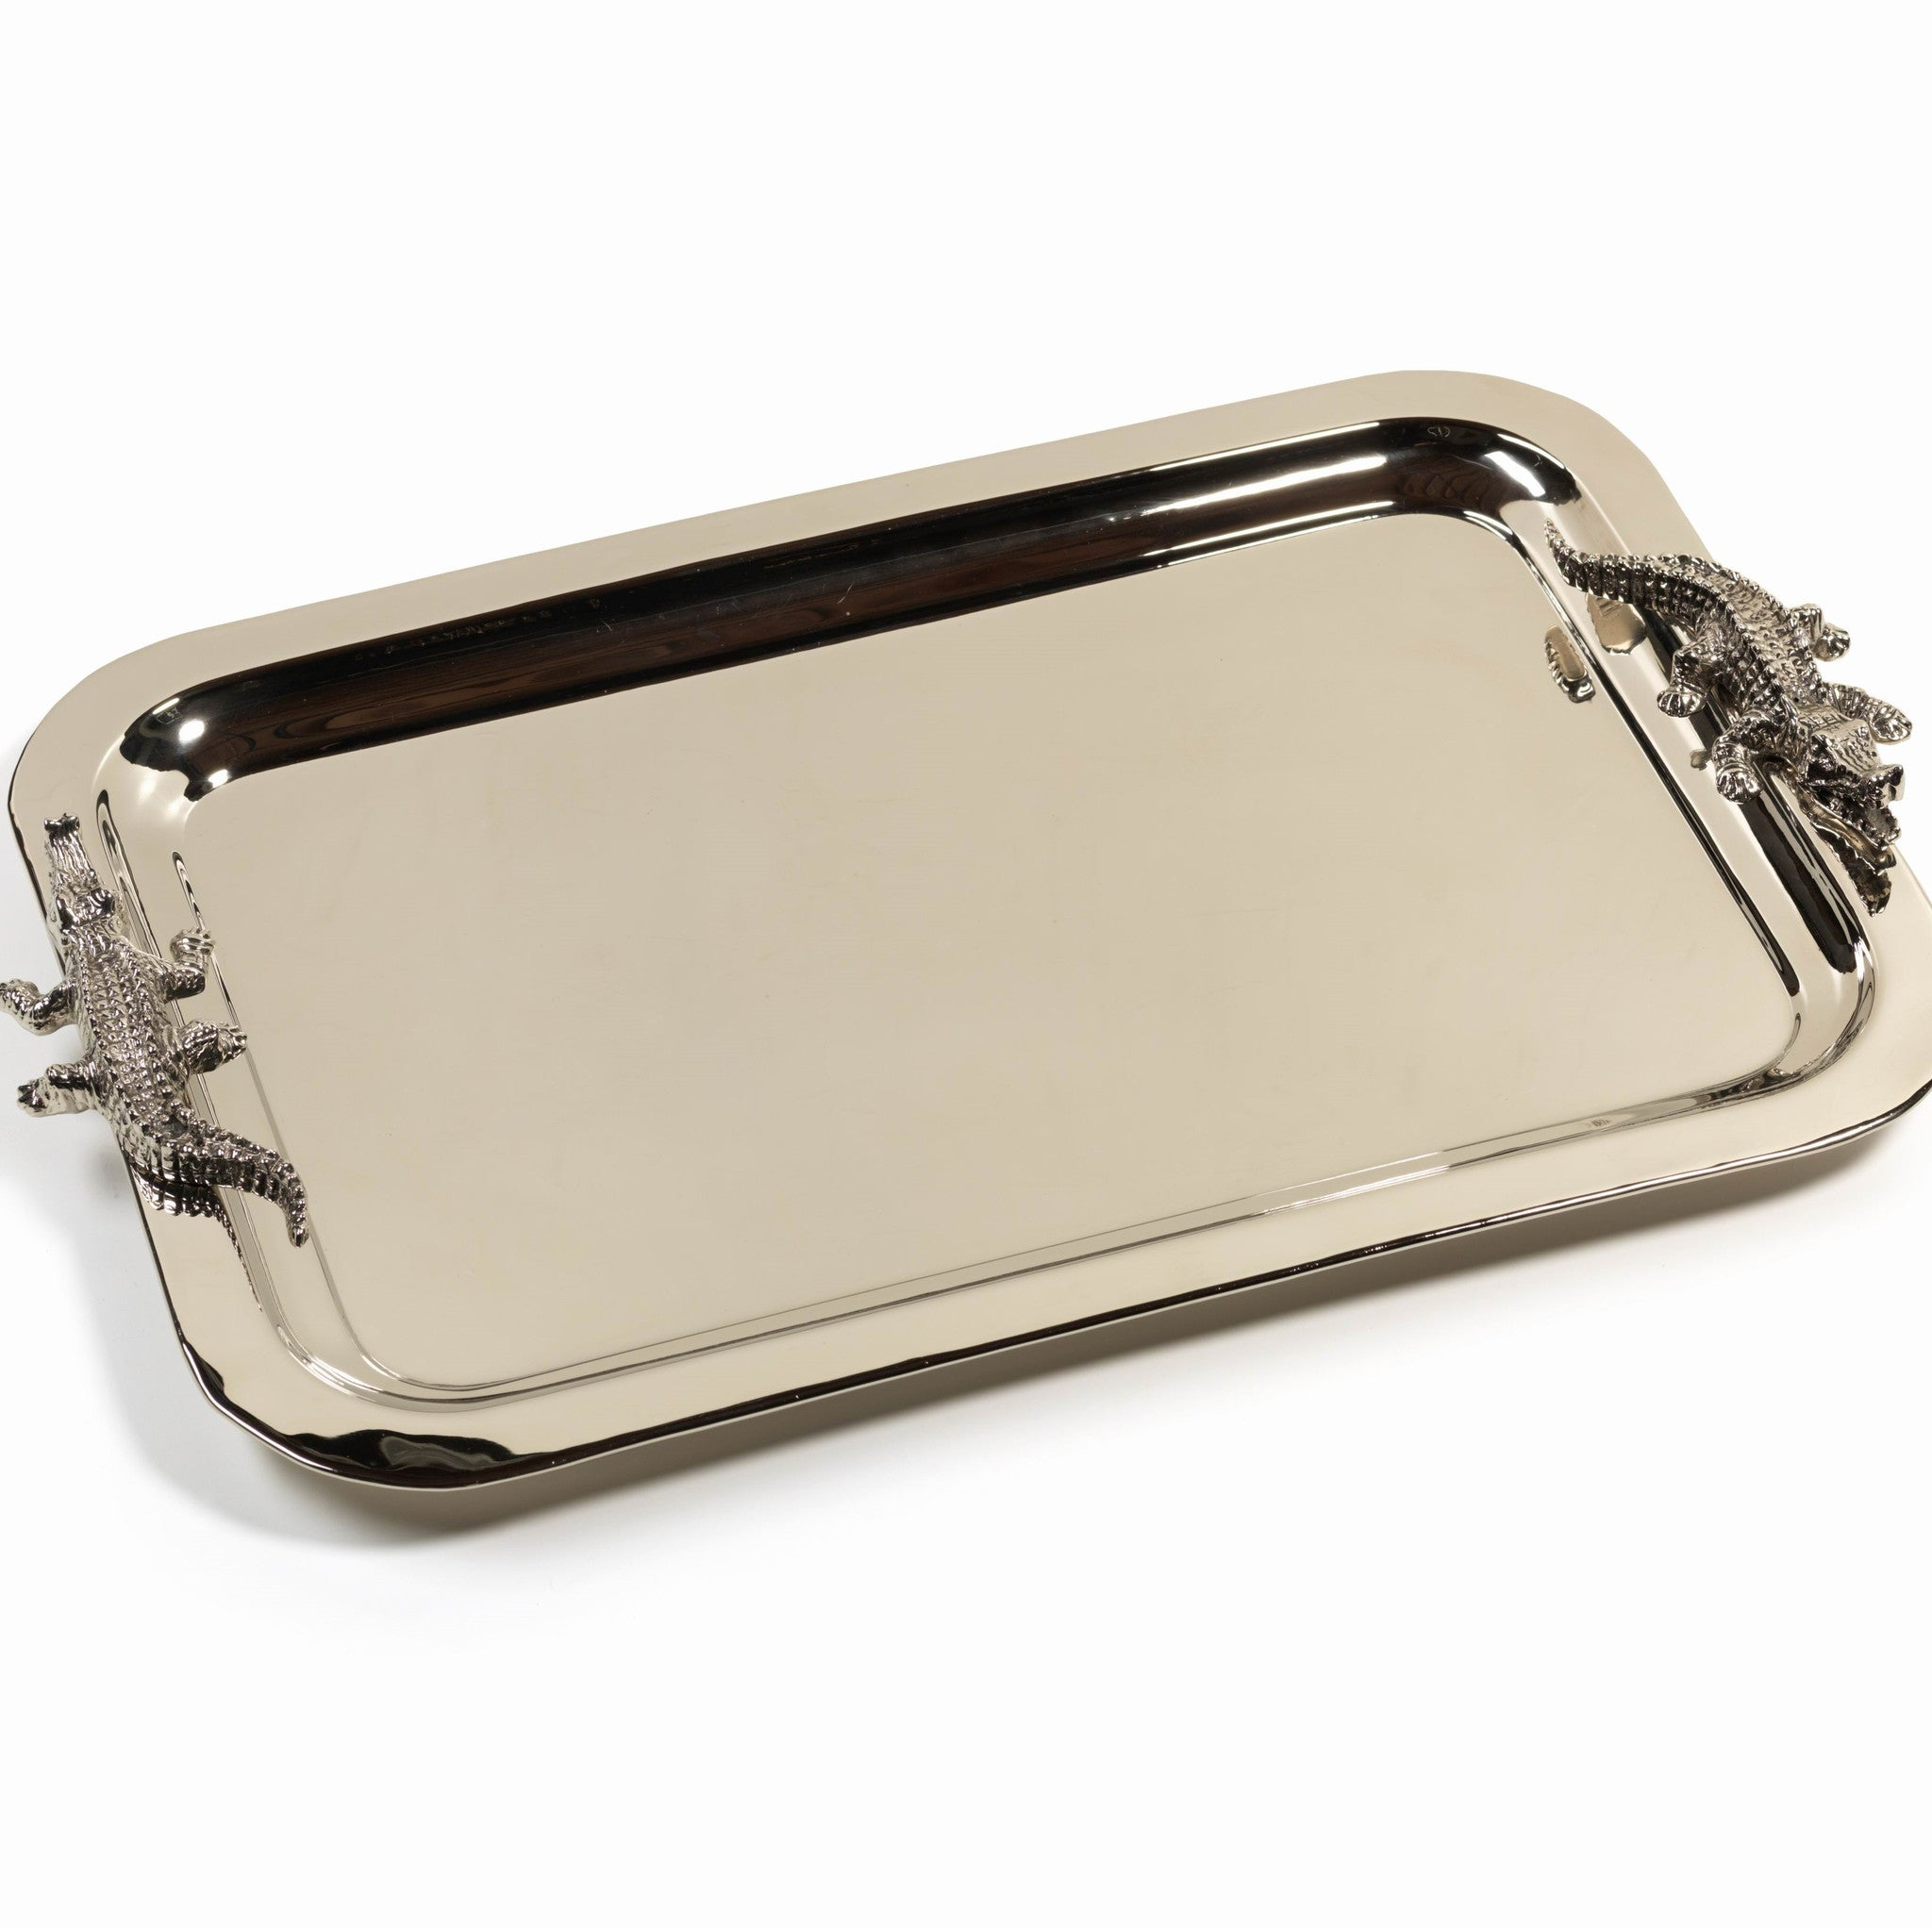 Crocodile Serving Tray - CARLYLE AVENUE